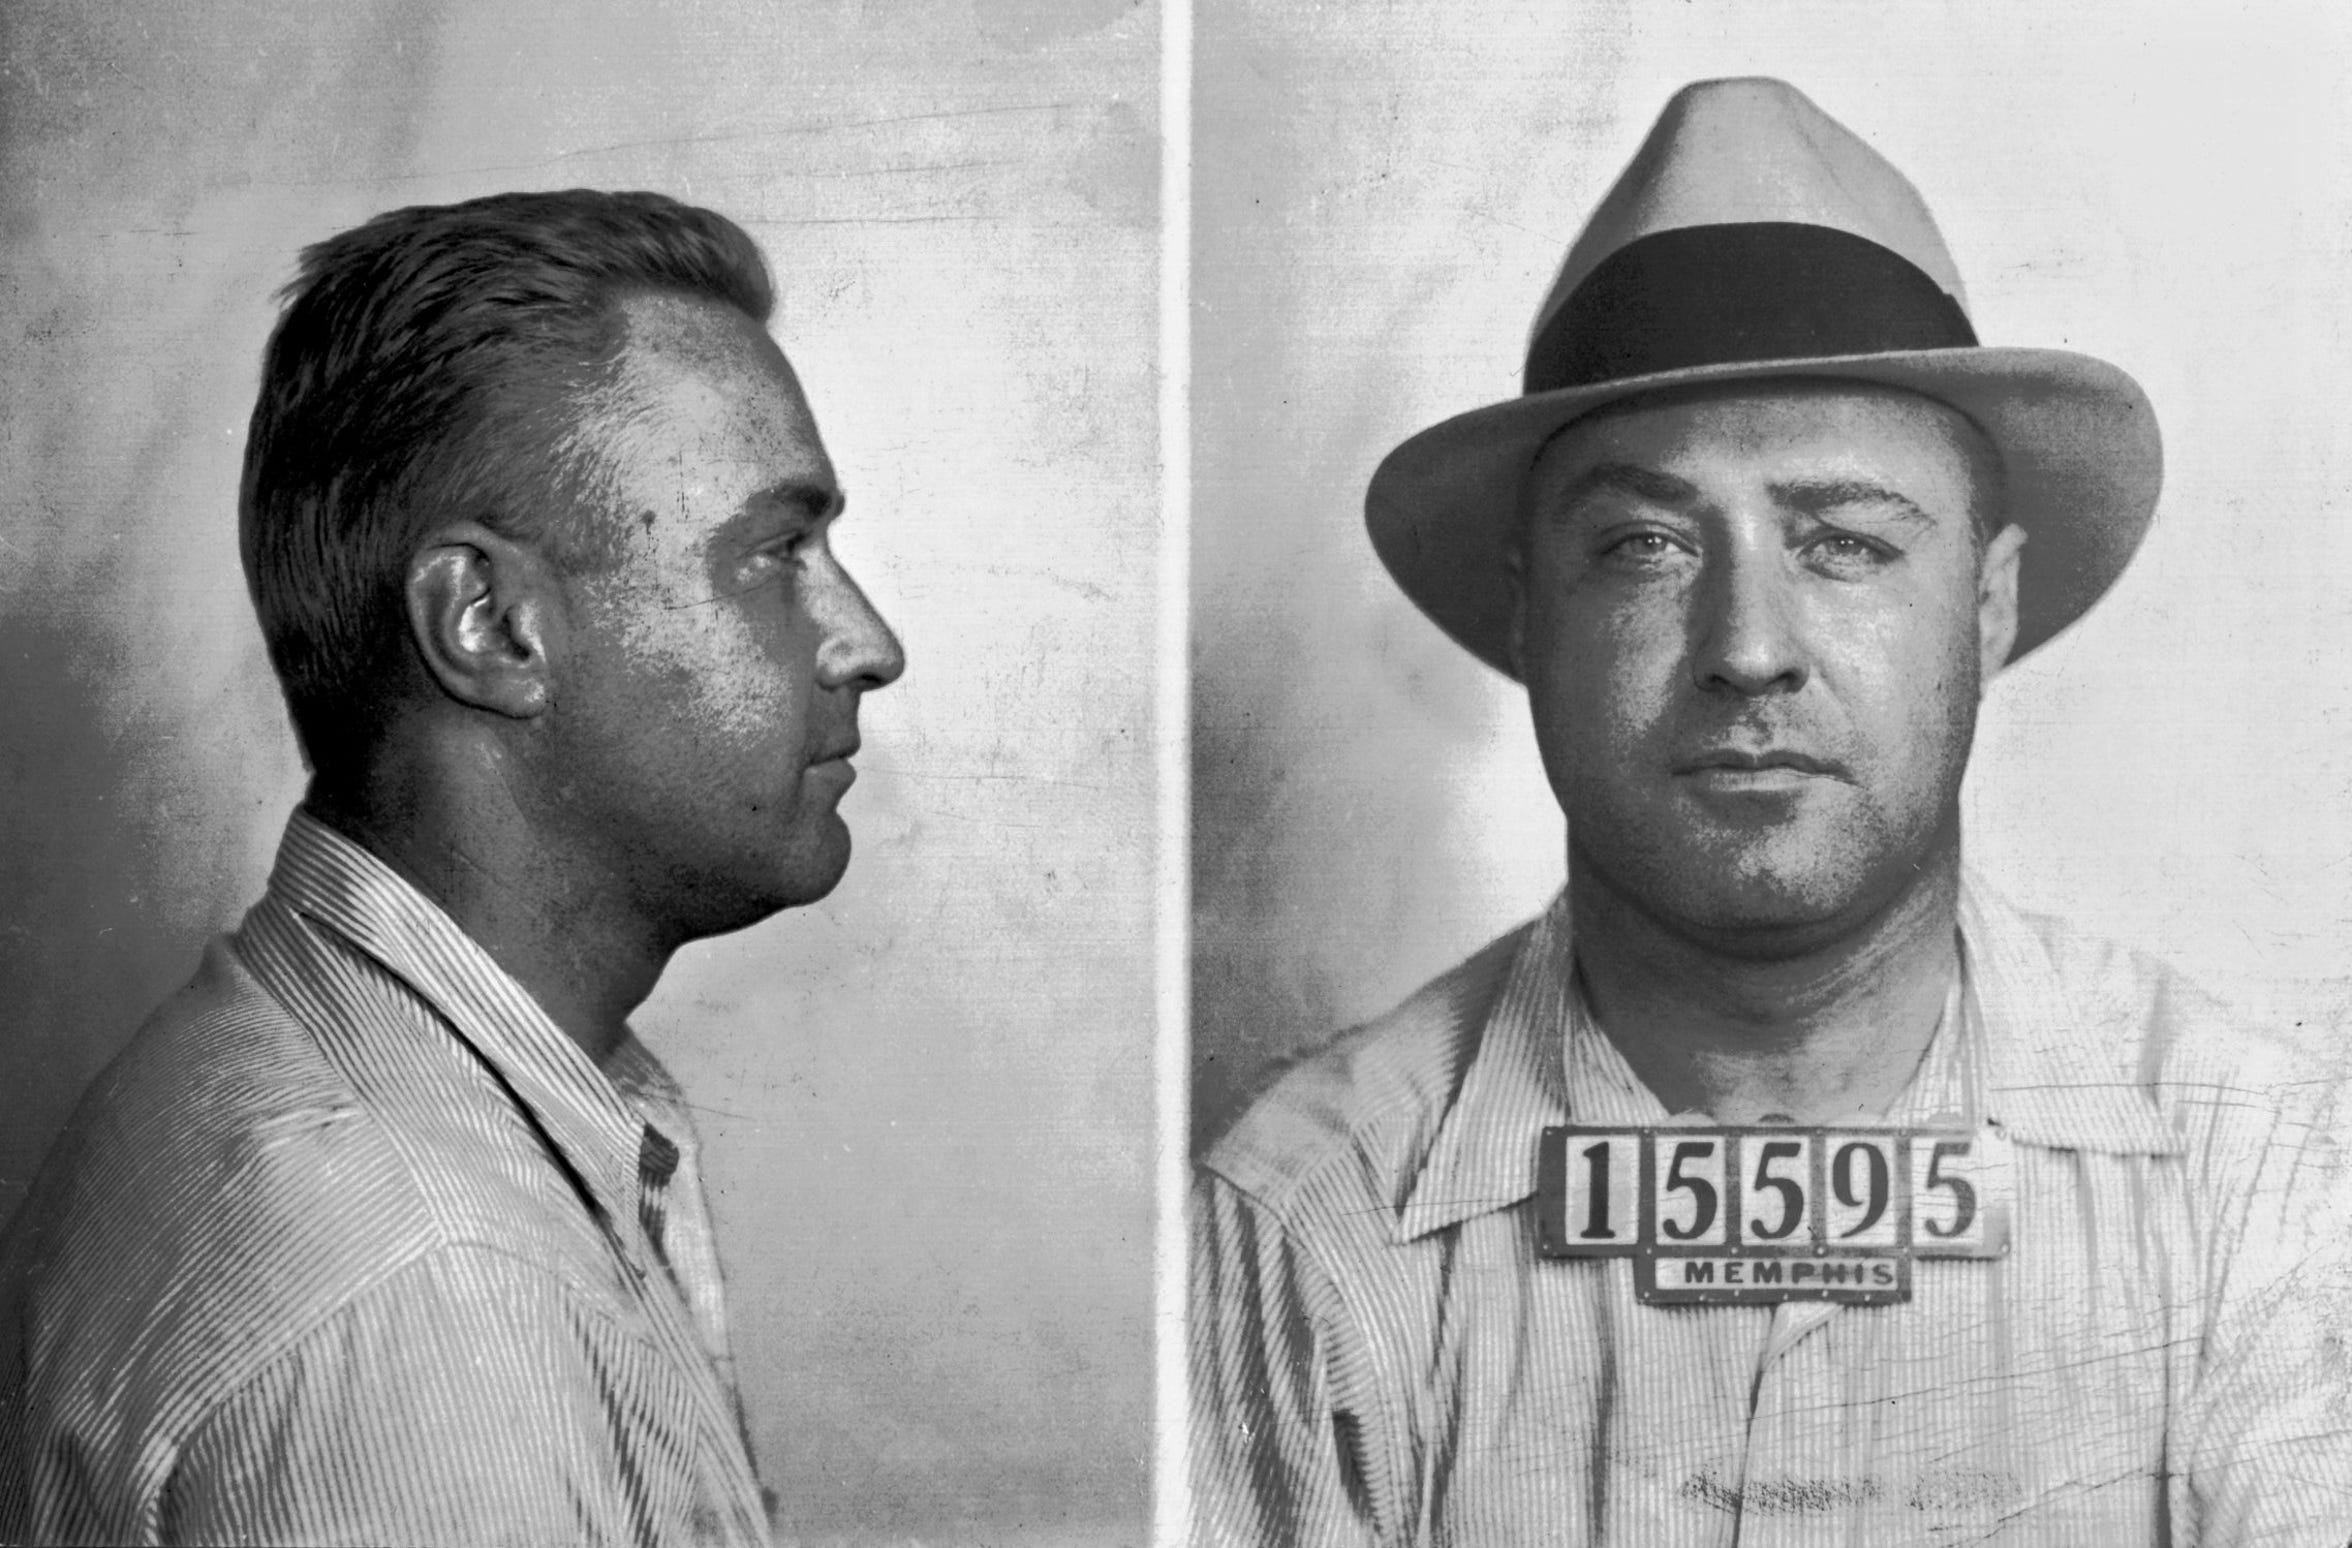 """I'll be out of this jail before long - they've got me, but keeping me is another thing"", George ""Machine Gun"" Kelly told a Memphis Press-Scimitar reporter when he was cornered and captured in Memphis. Less than a week later on Sunday, October 1, 1933, ""Machine Gun"" did get out but only to be transported to the Memphis Airport for transport to Oklahoma City for his trial in the kidnapping of Charles F. Urschel, a wealthy oil executive of Oklahoma City."